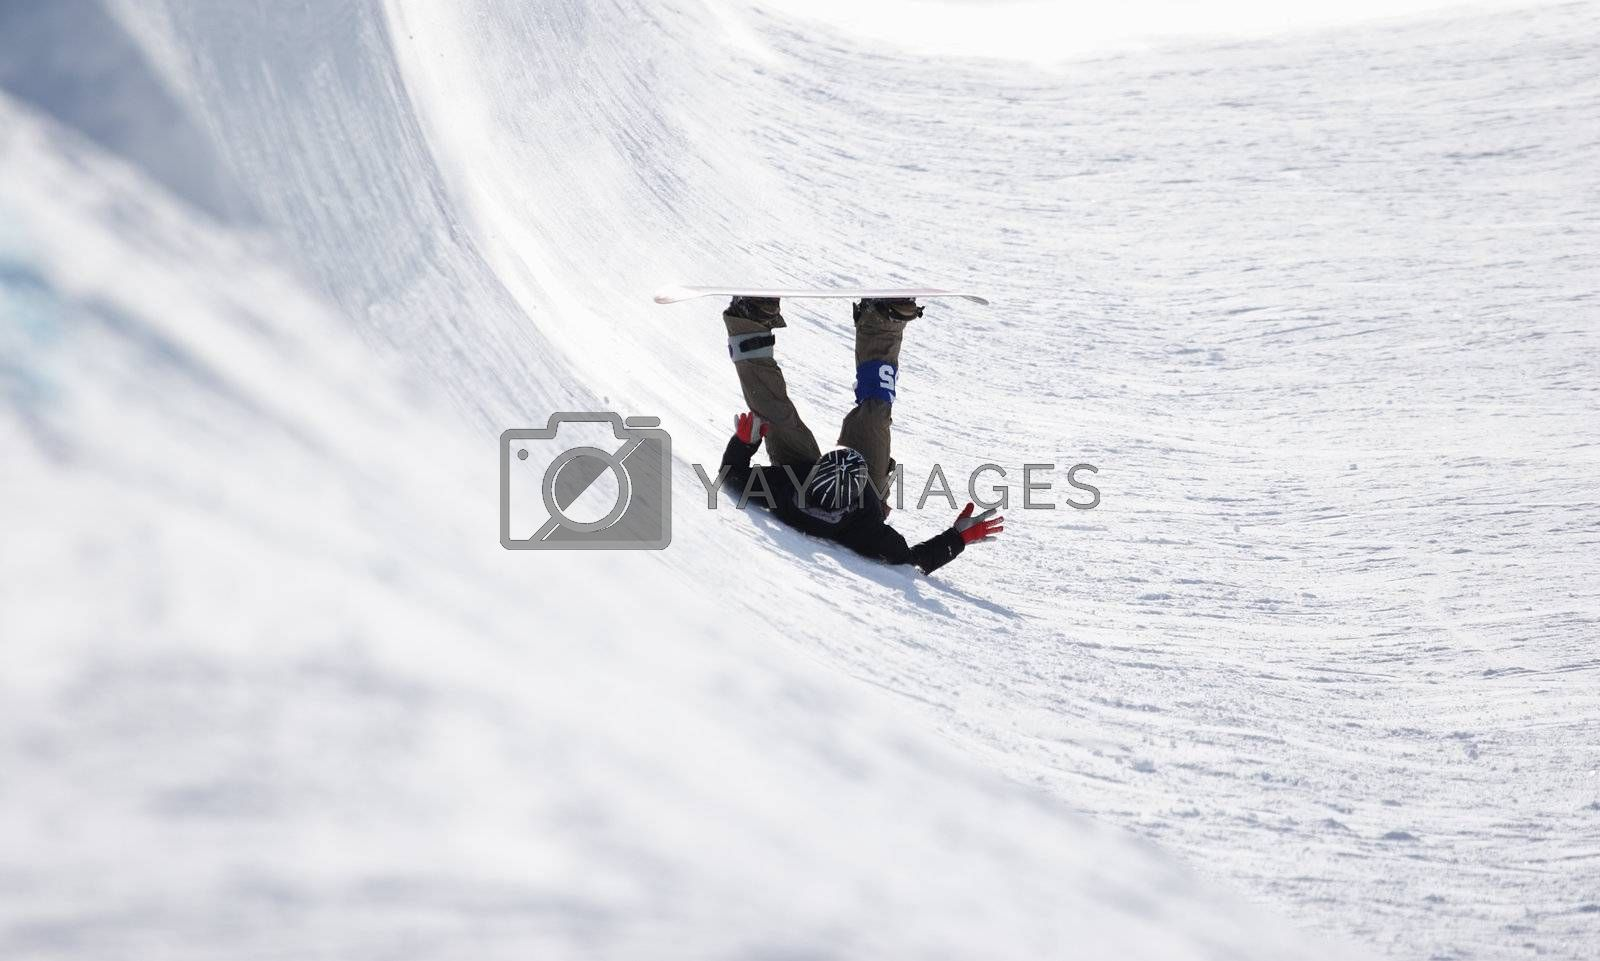 A snowboarder falls onto his back in a half pipe